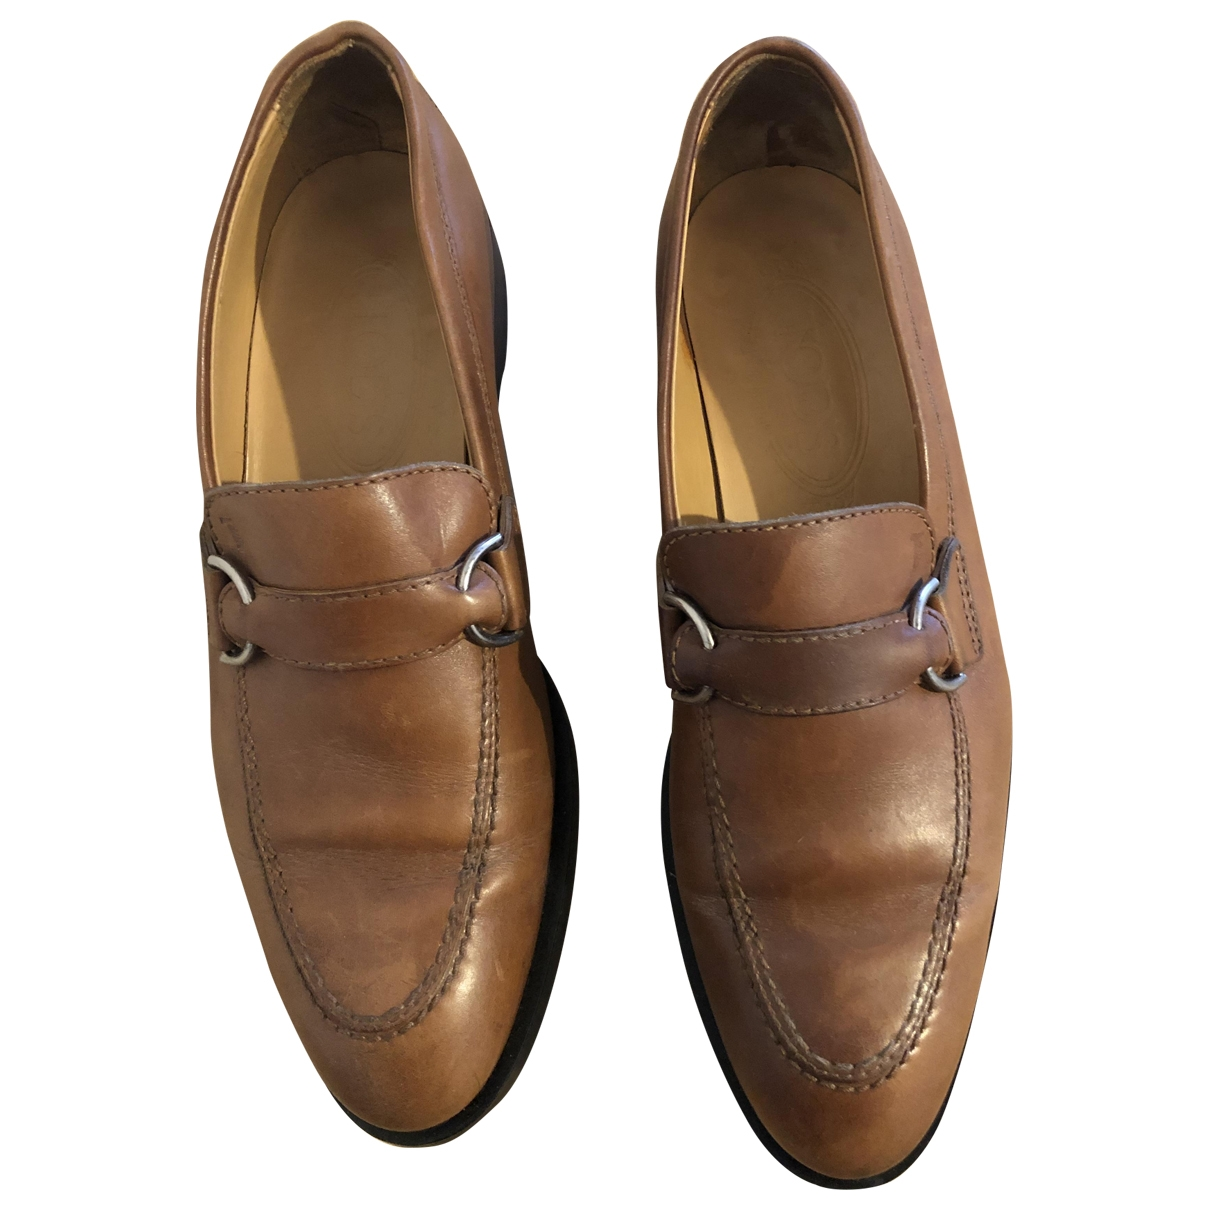 Tod's \N Brown Leather Flats for Women 38 EU